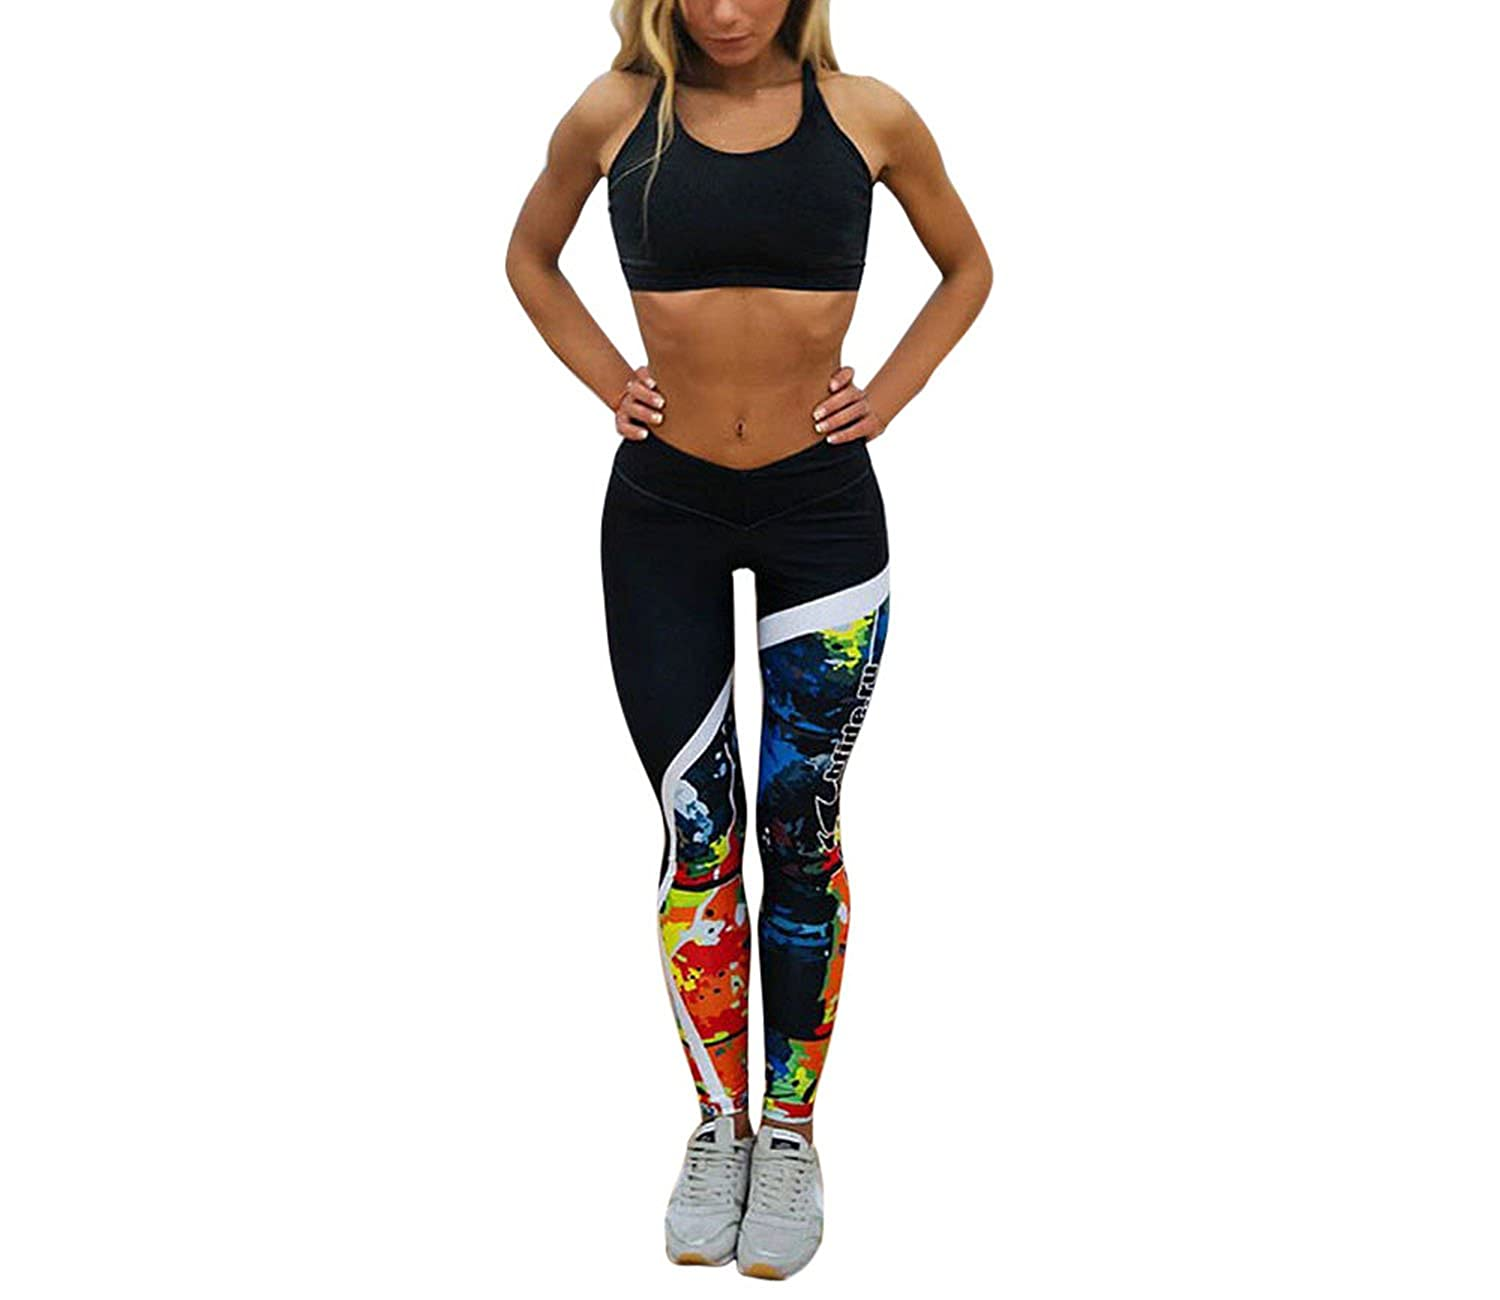 Small-shop Women Letter Printed Skinny Fitness Stretchy Yo ...